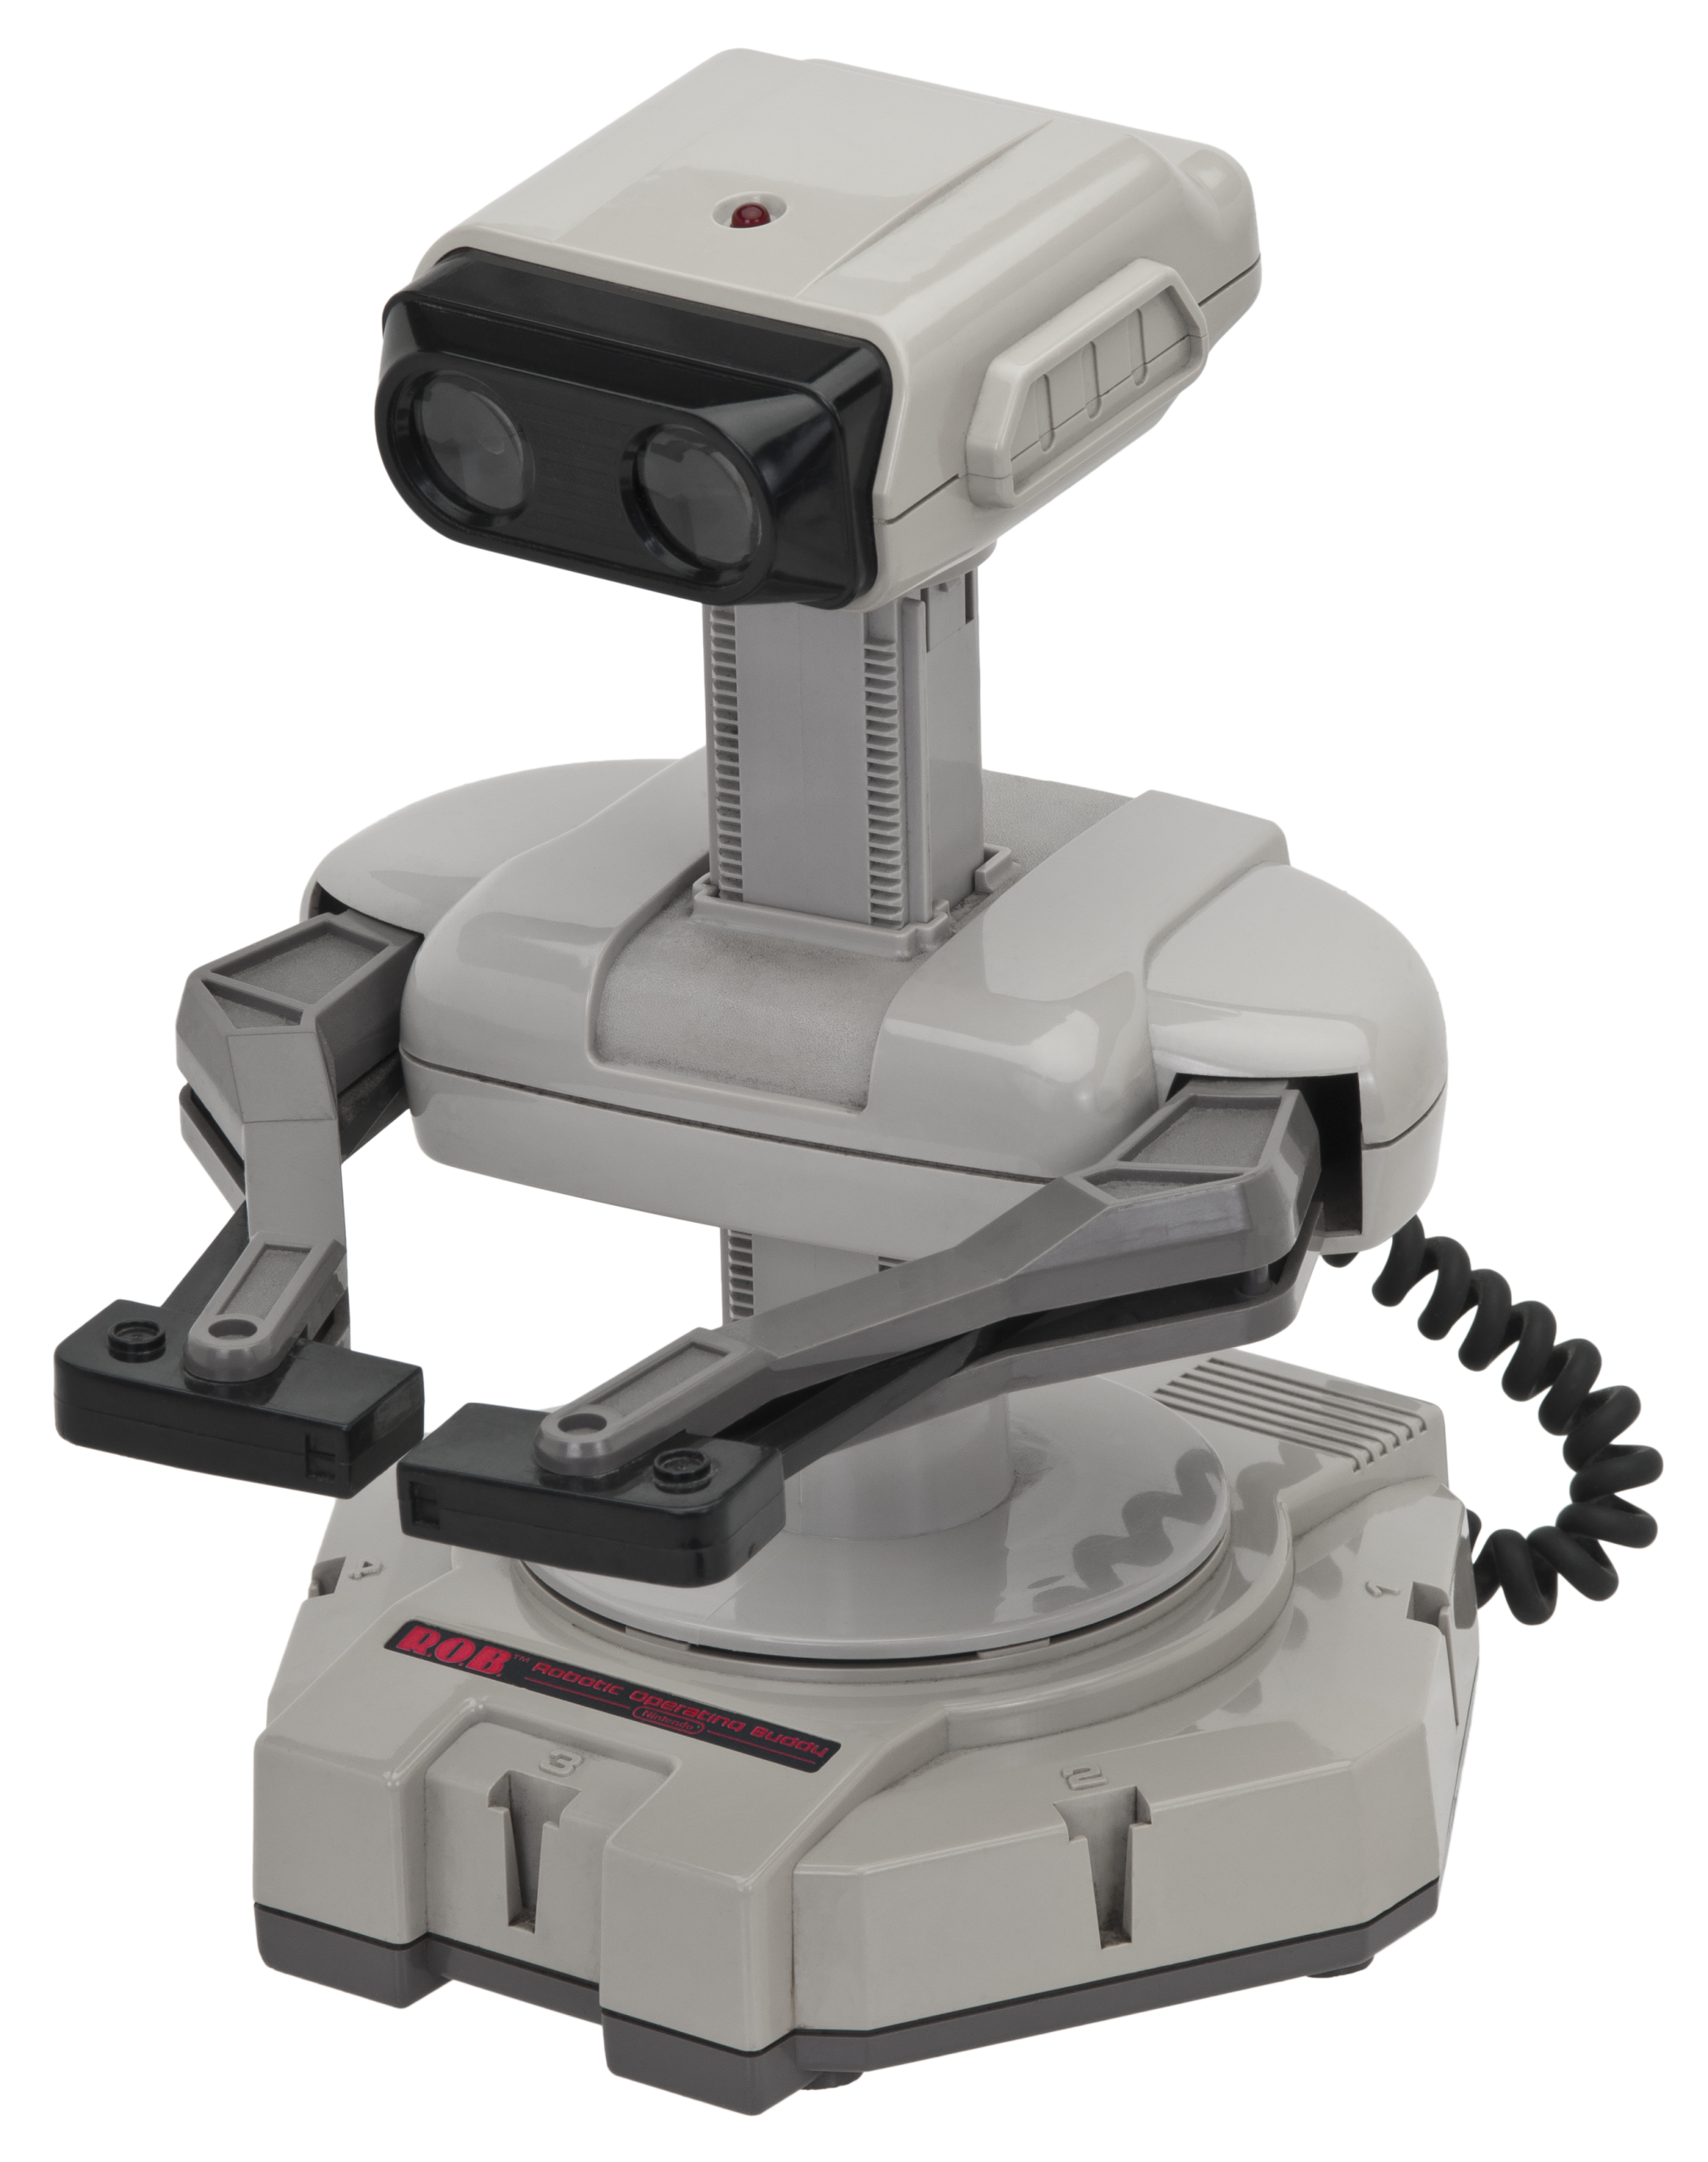 It's an iconic image now, but originally the R.O.B. robot only worked with 2 games and did a better job at scaring pets.